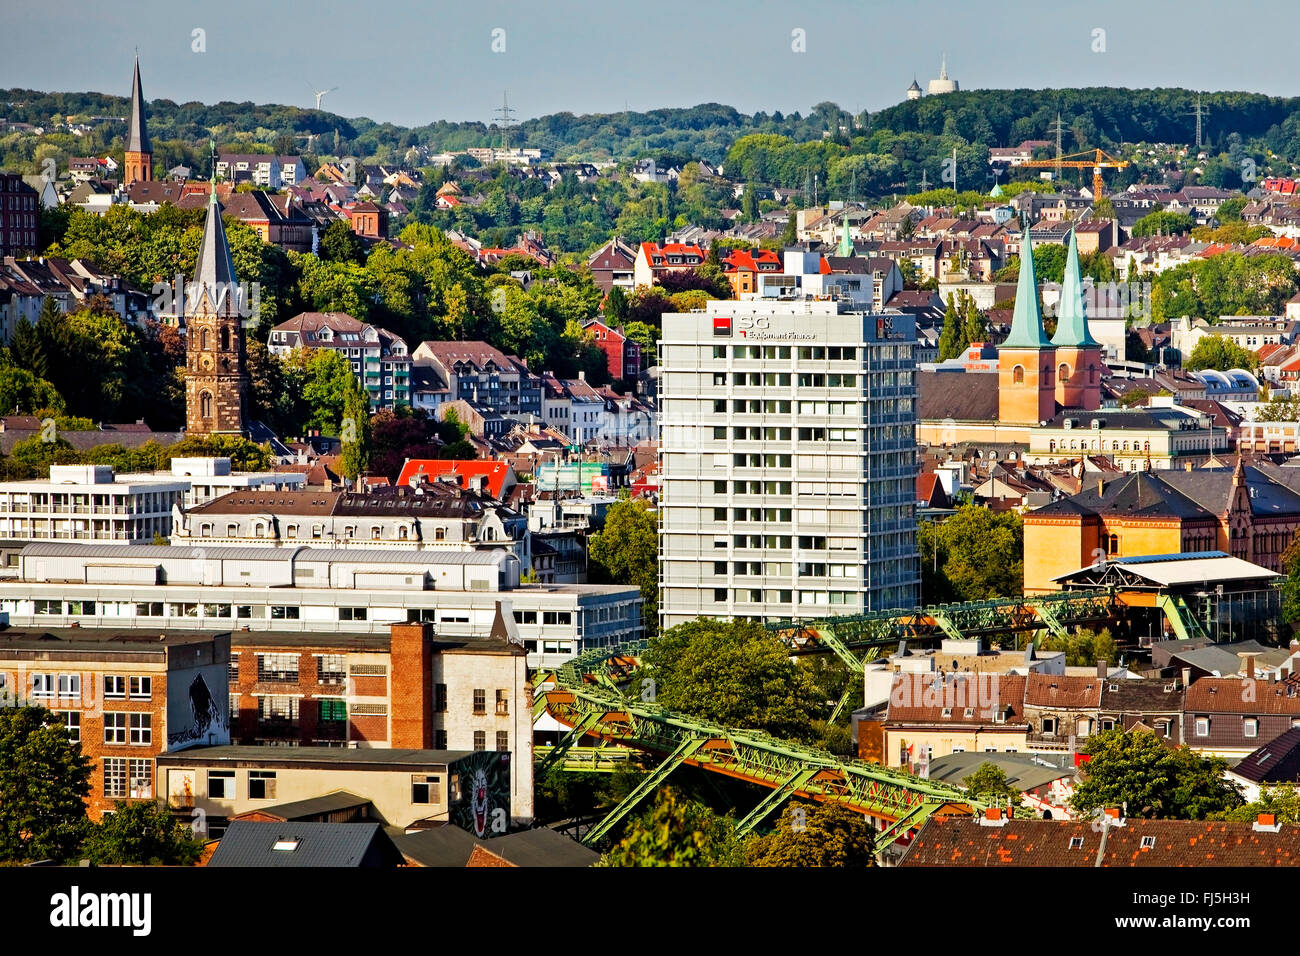 view to district Elberfeld with Wuppertal Suspension Railway, Germany, North Rhine-Westphalia, Bergisches Land, Stock Photo